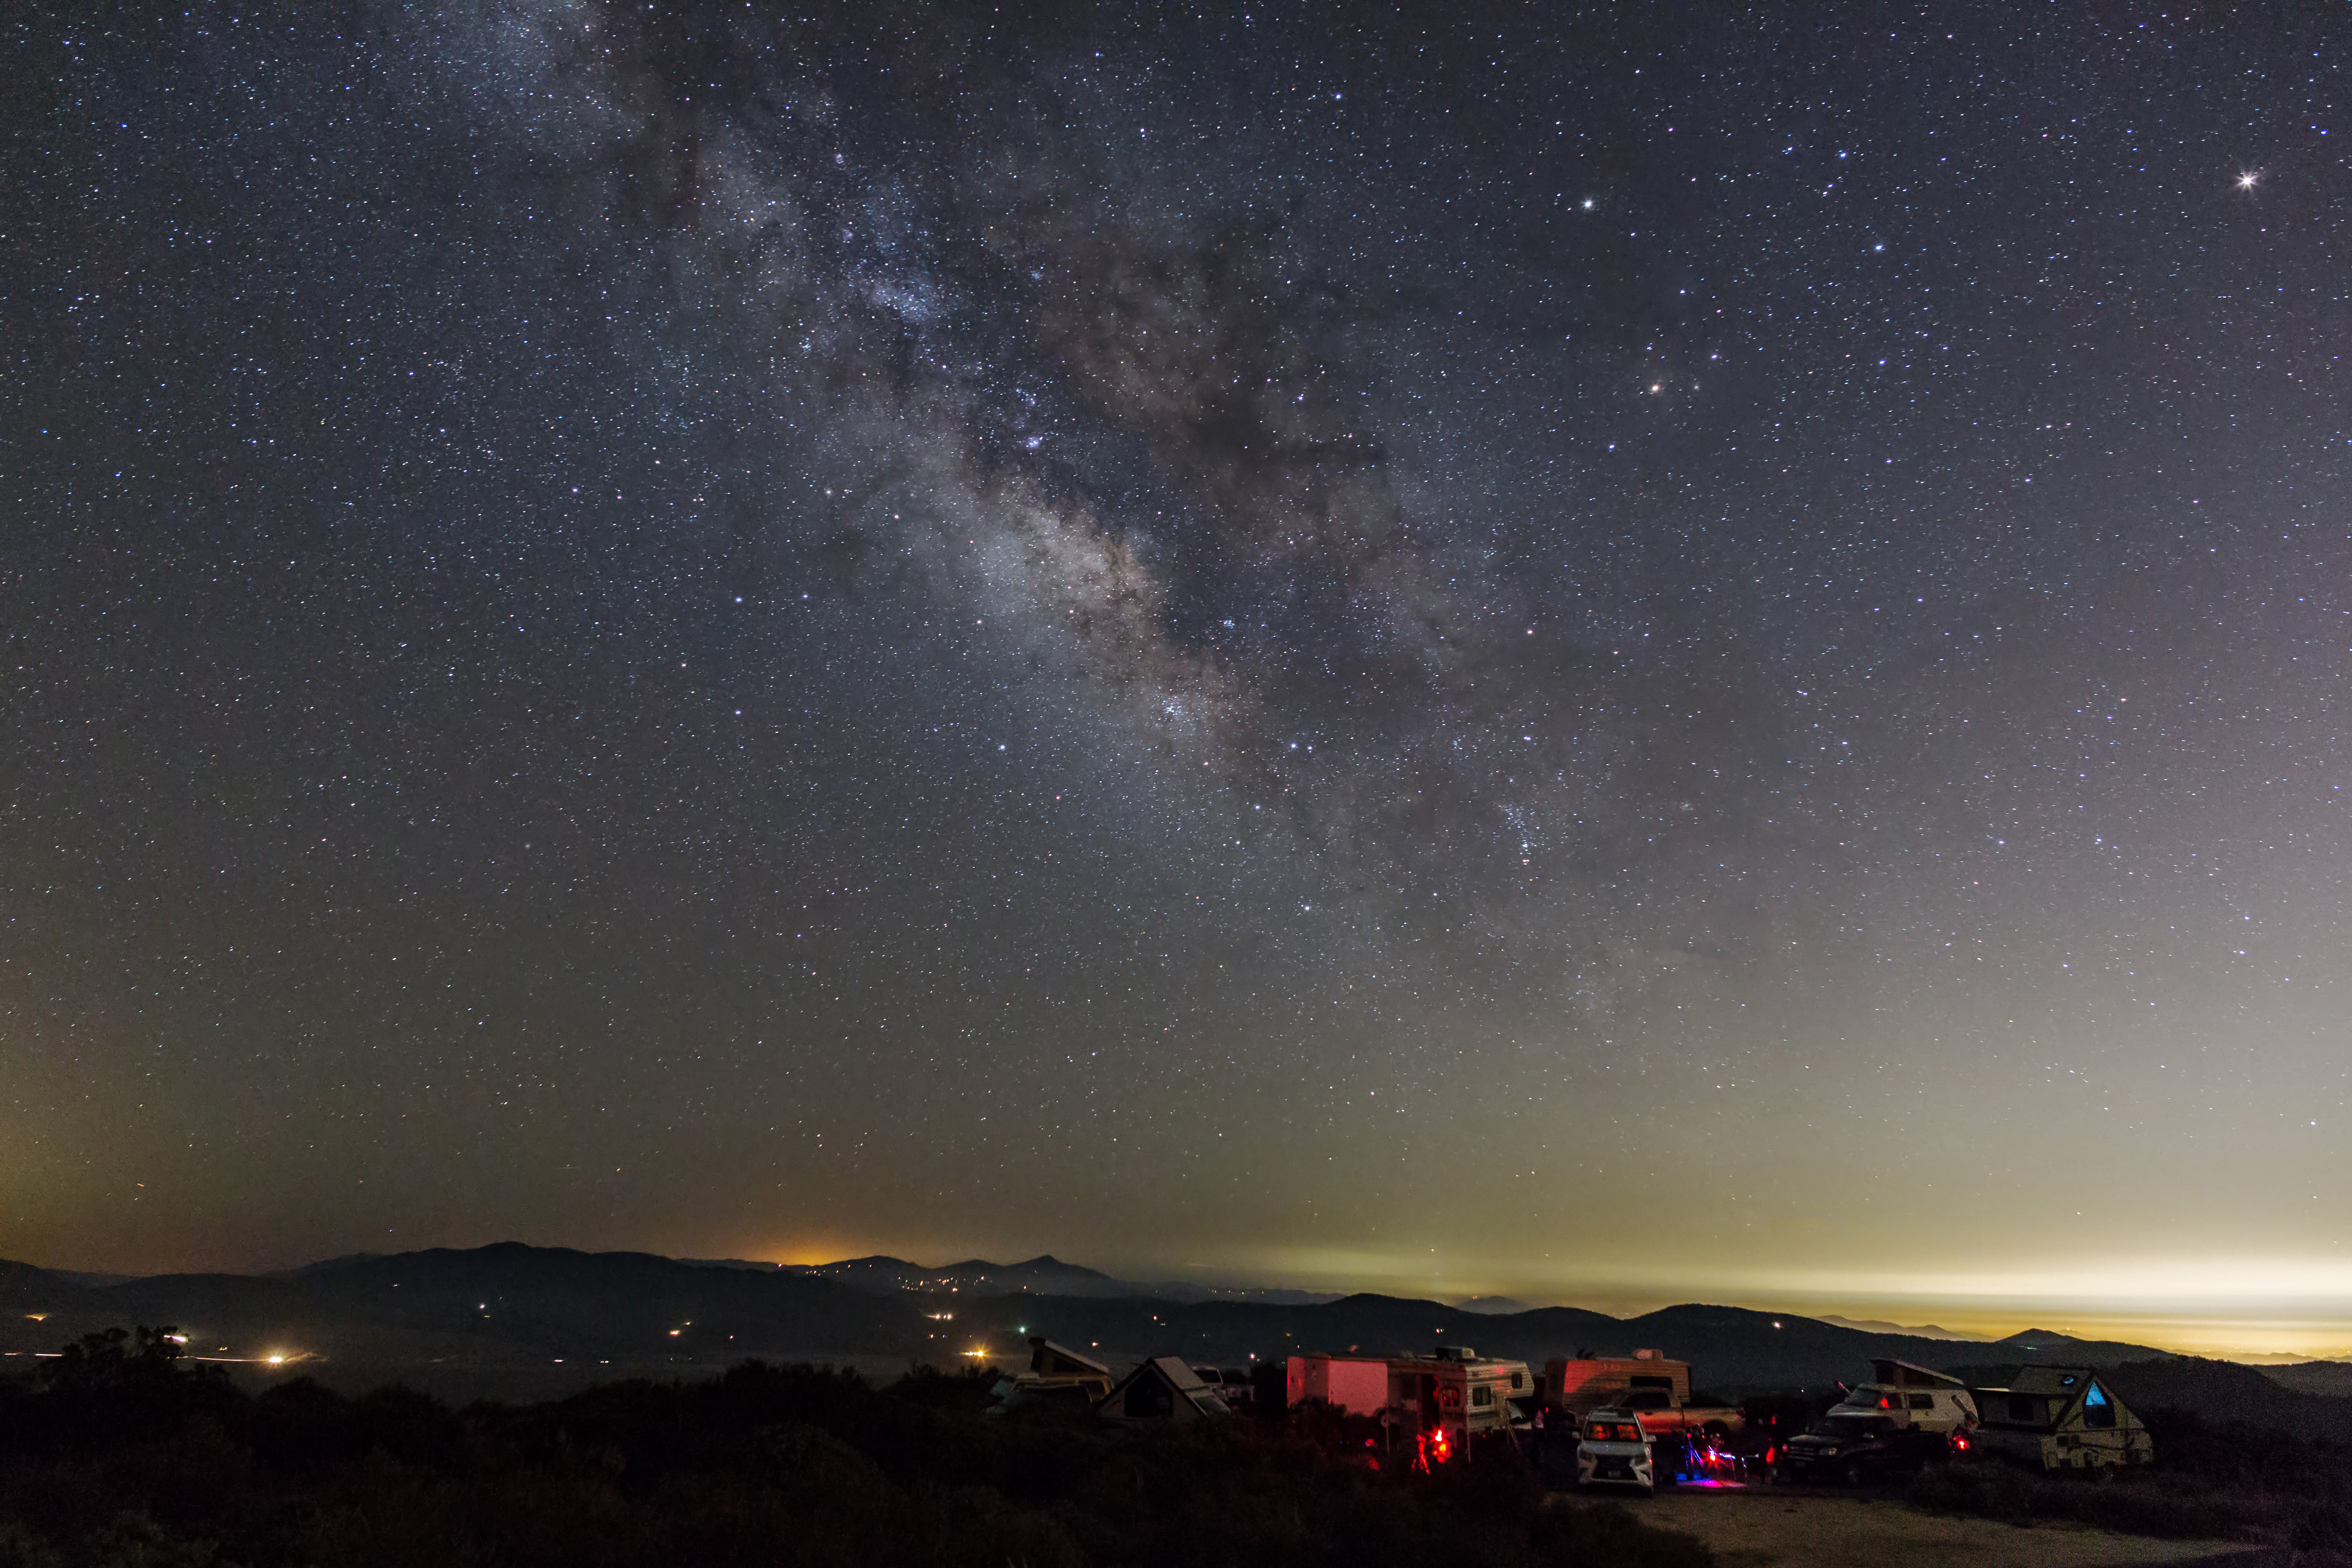 Star Party under the Milky Way